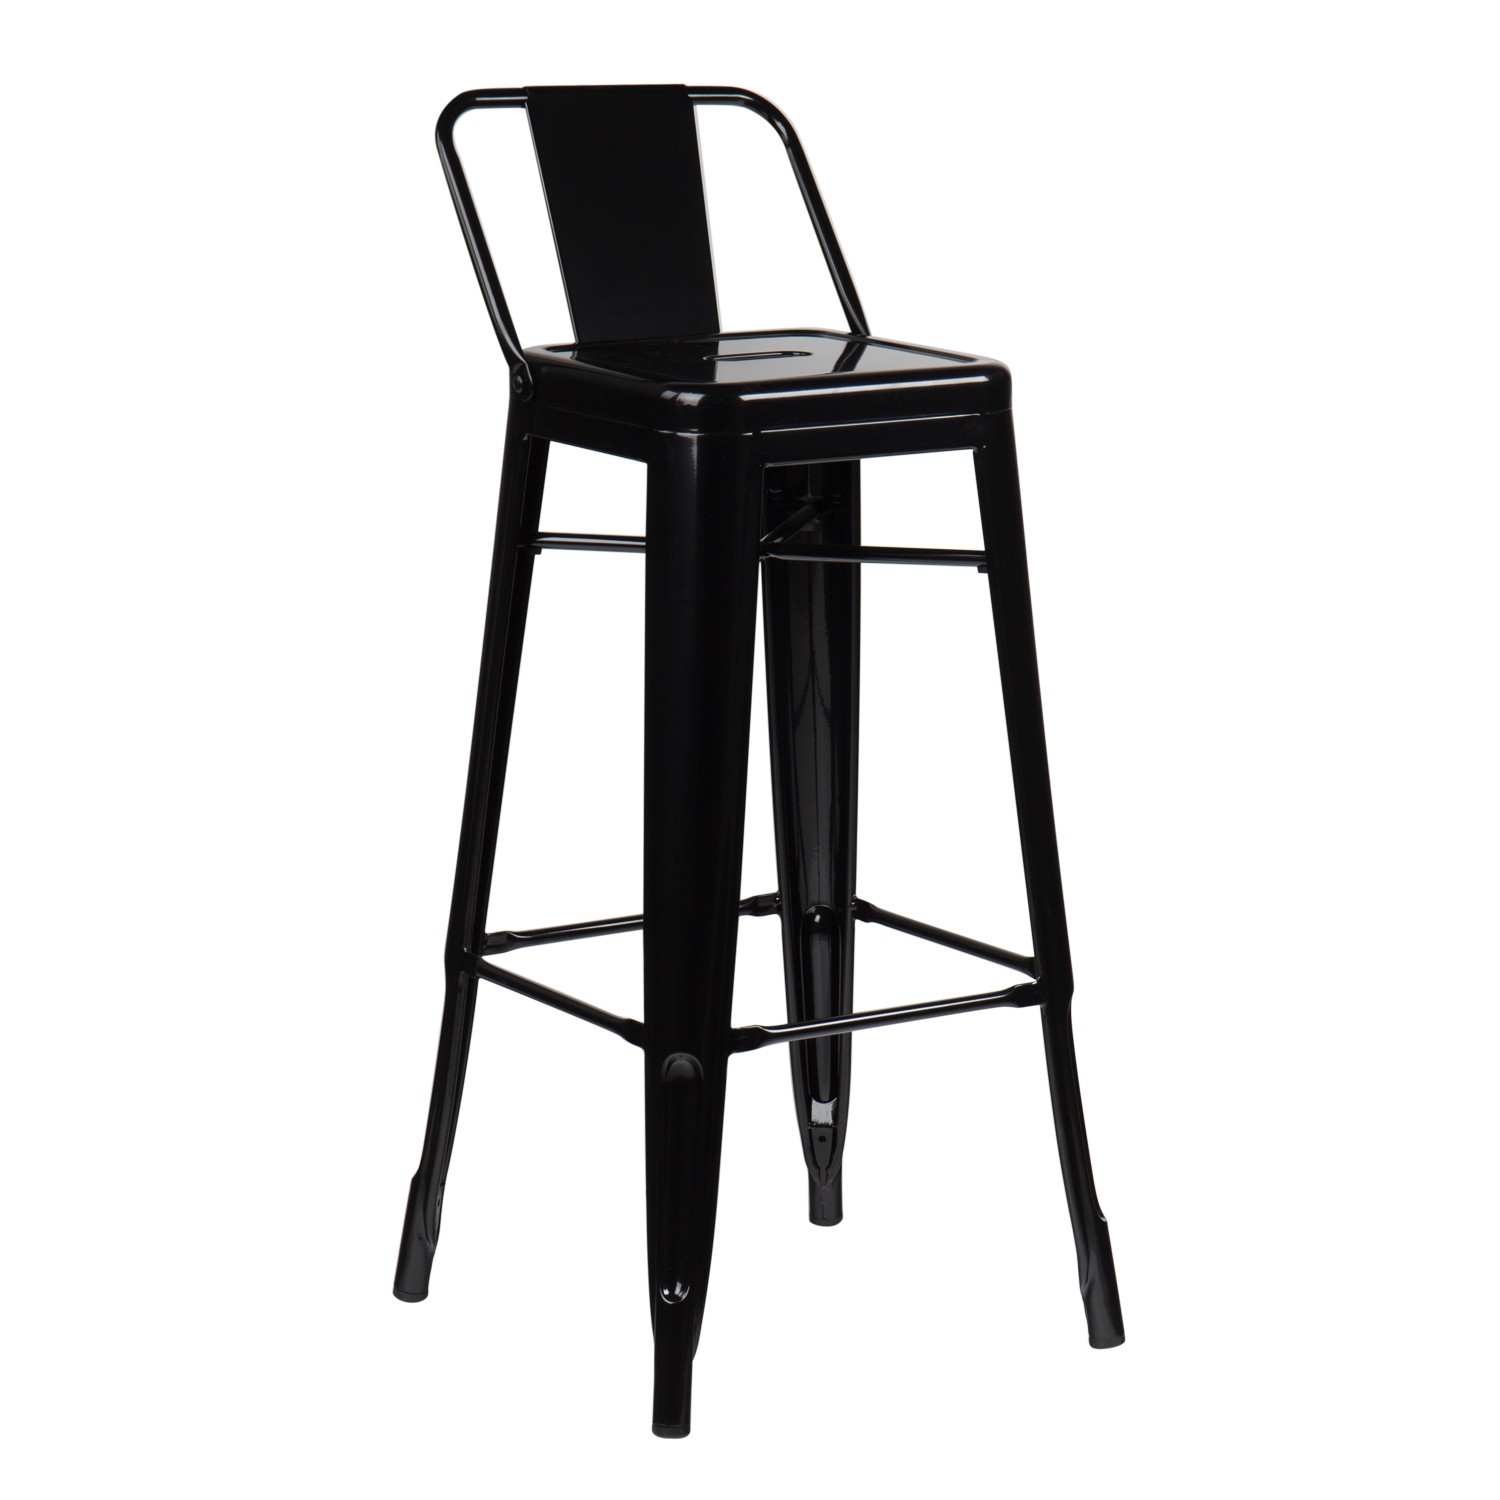 tabouret haut avec dossier lix sklum france. Black Bedroom Furniture Sets. Home Design Ideas